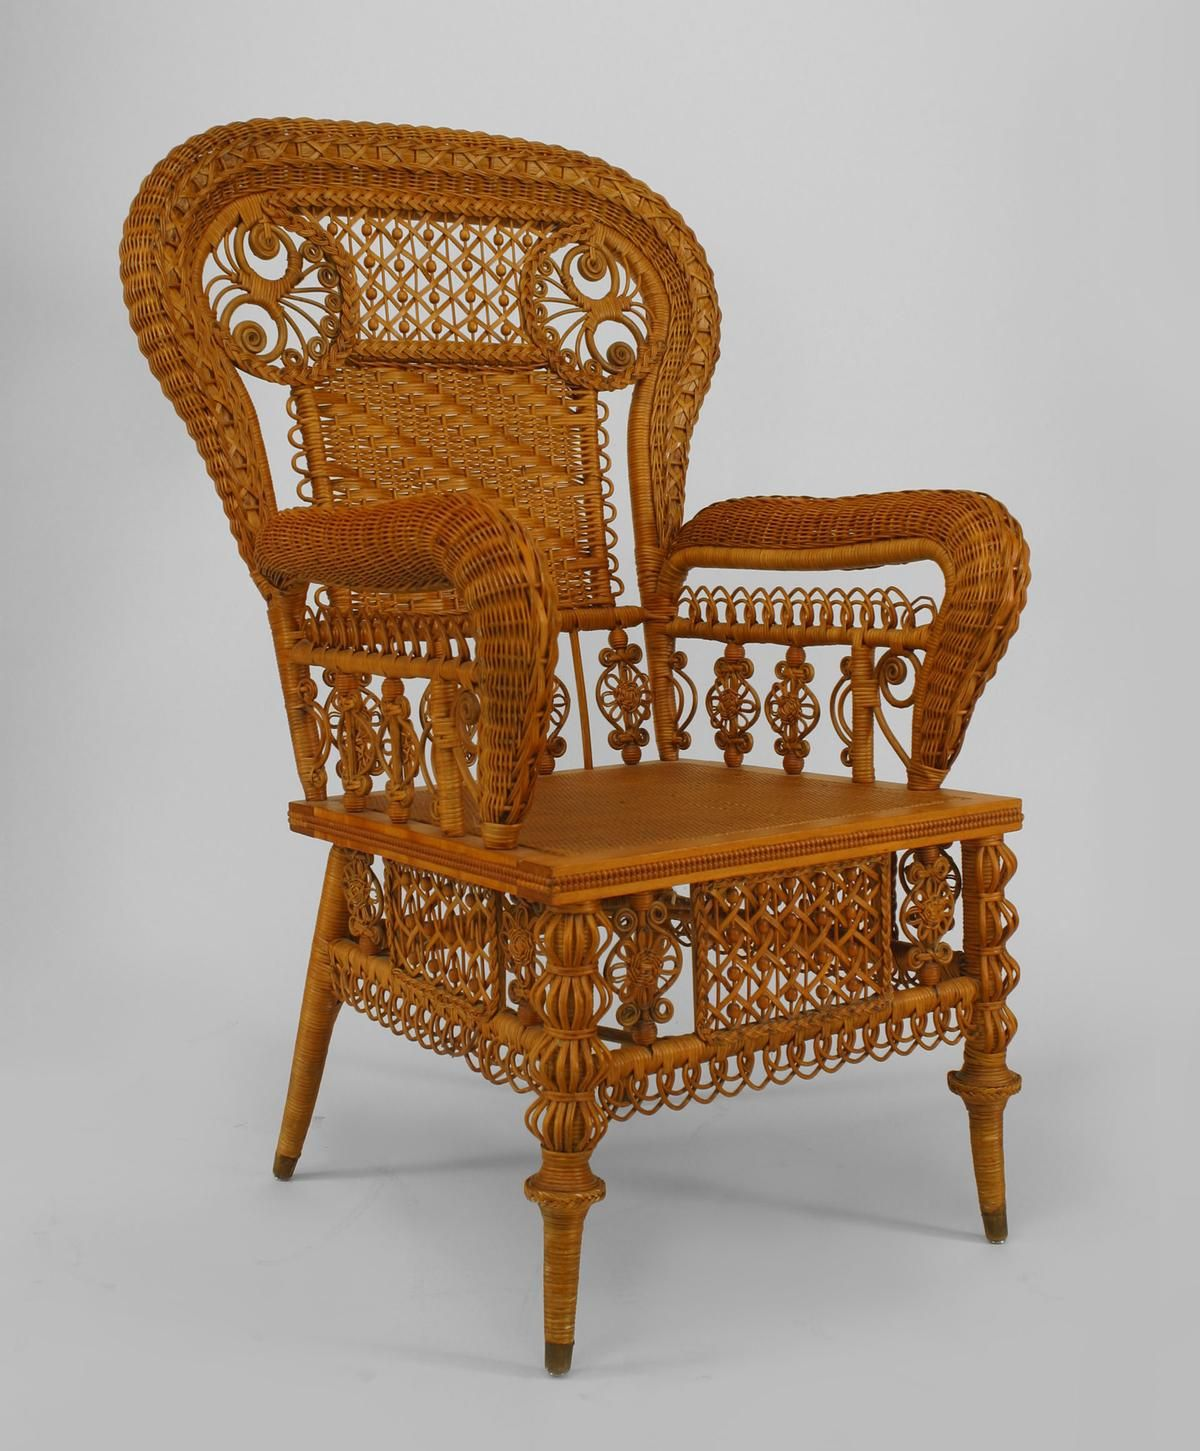 American Victorian Pre 1897 Ornate Natural Wicker Arm Chair With Woven Panel Back And Filigree Trim Hey Victorian Wicker Wicker Furniture Victorian Furniture